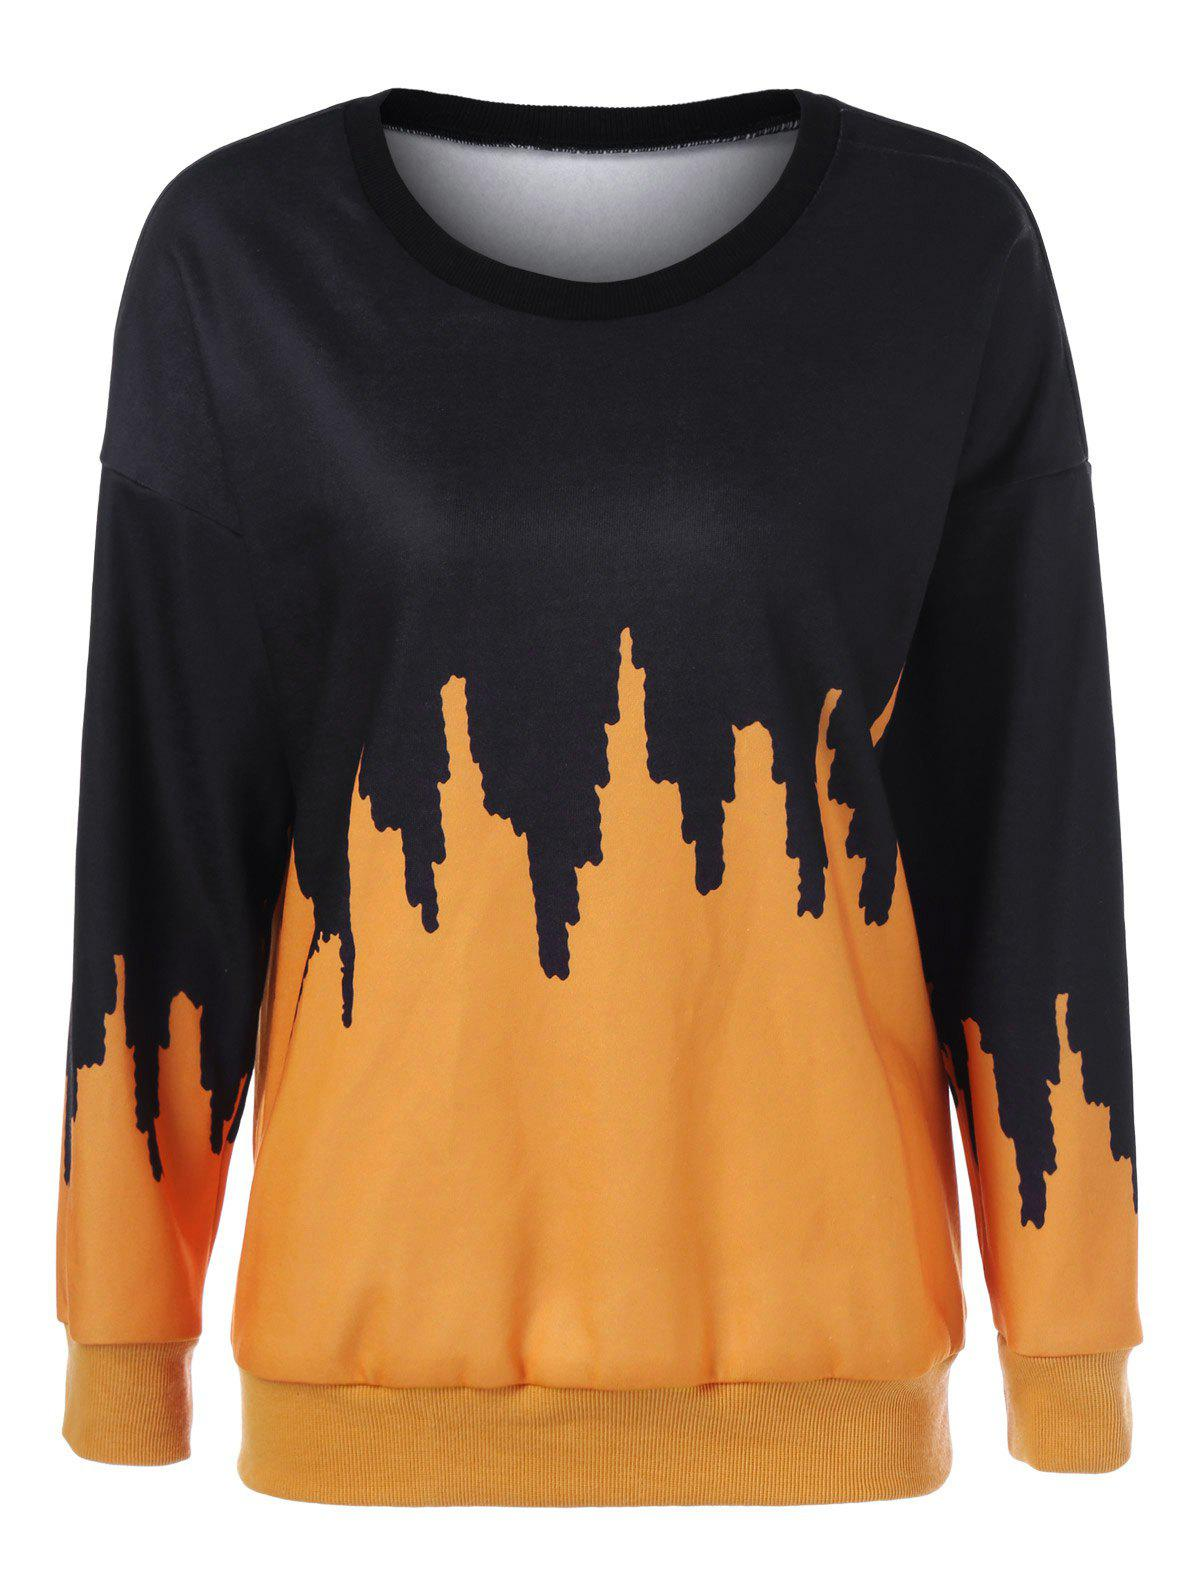 Drop Shoulder Print SweatshirtWomen<br><br><br>Size: L<br>Color: YELLOW AND BLACK